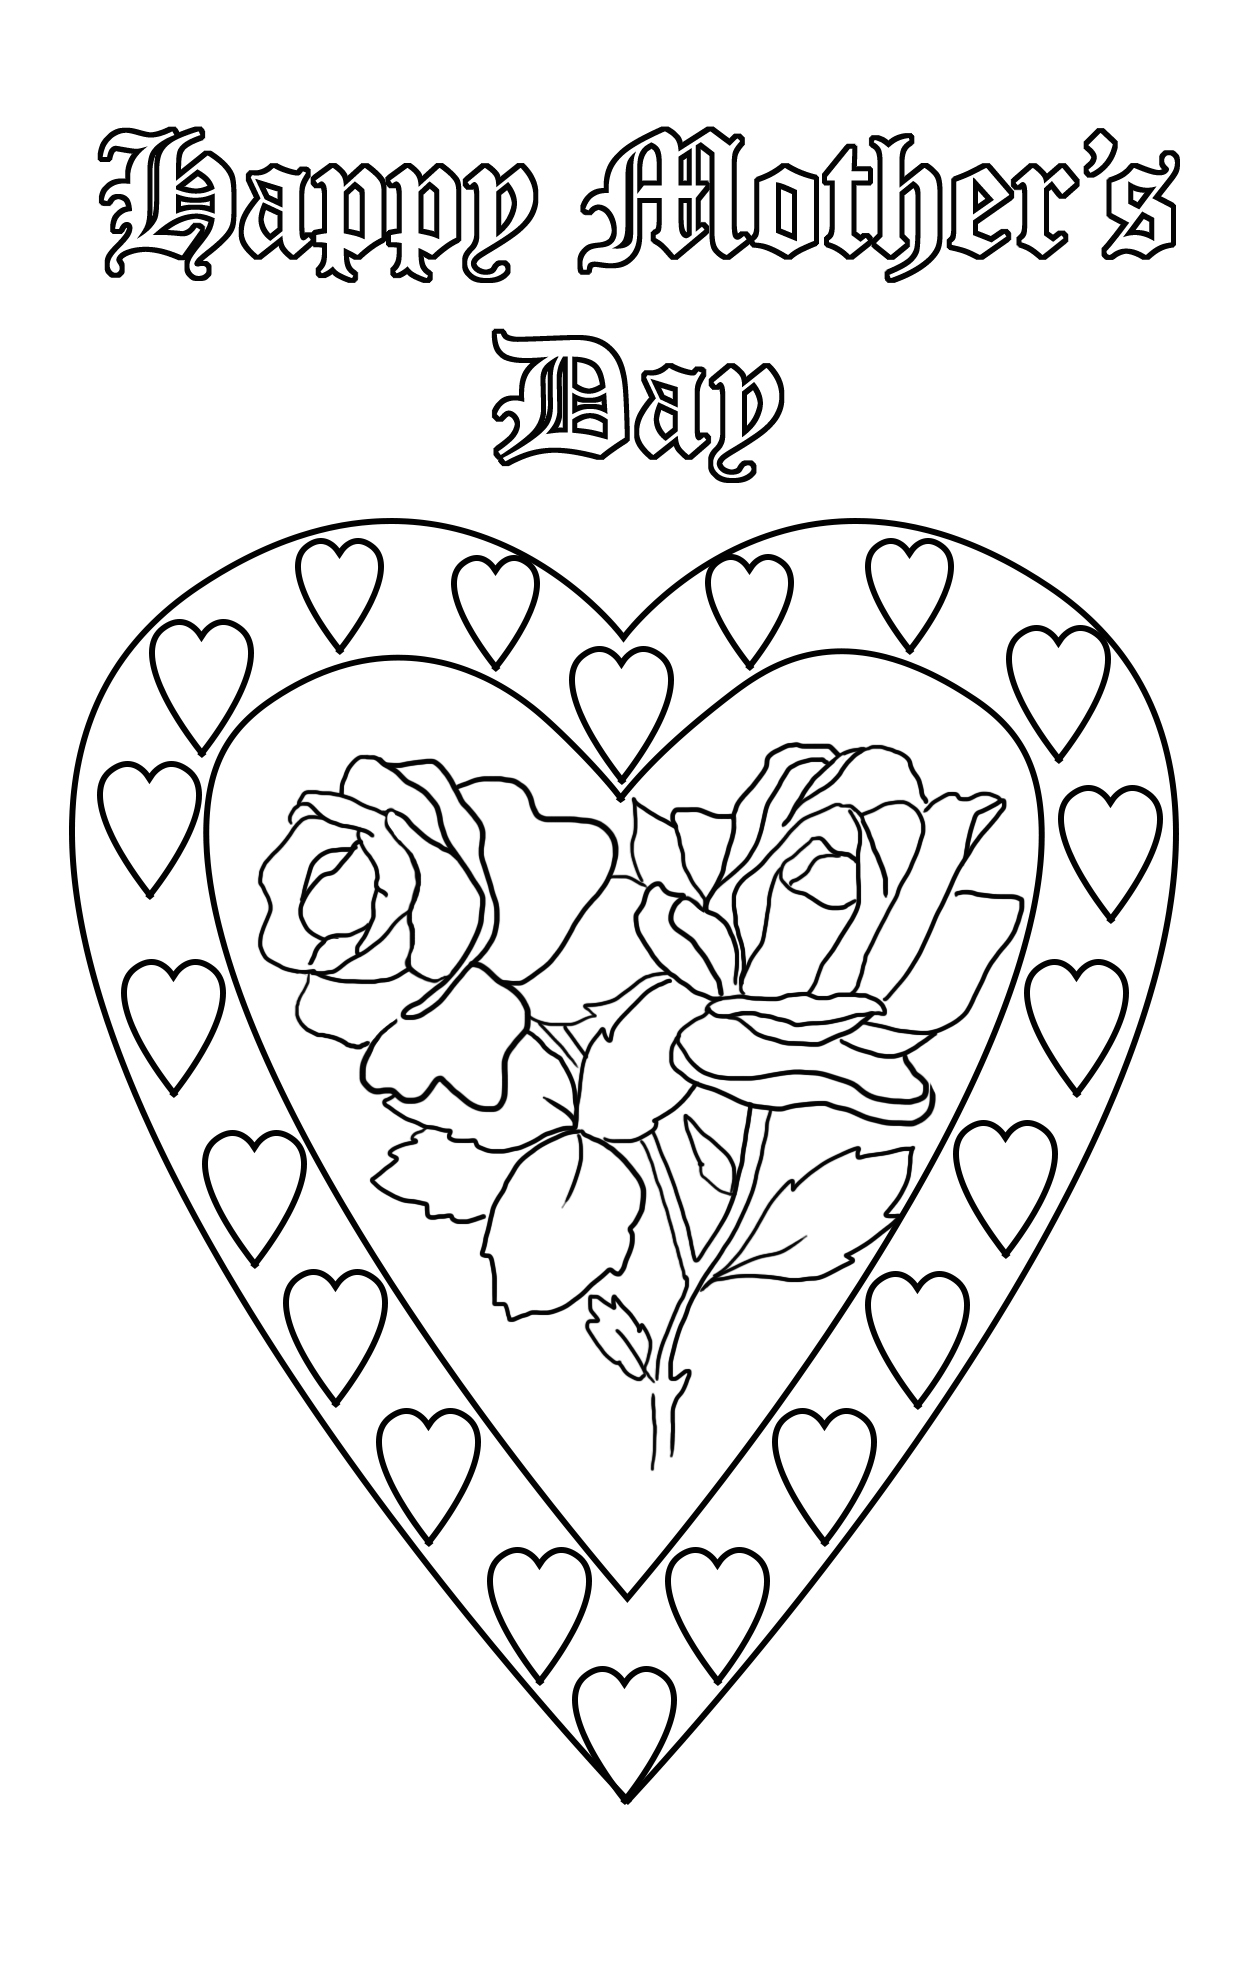 hearts and roses for Mother's day coloring